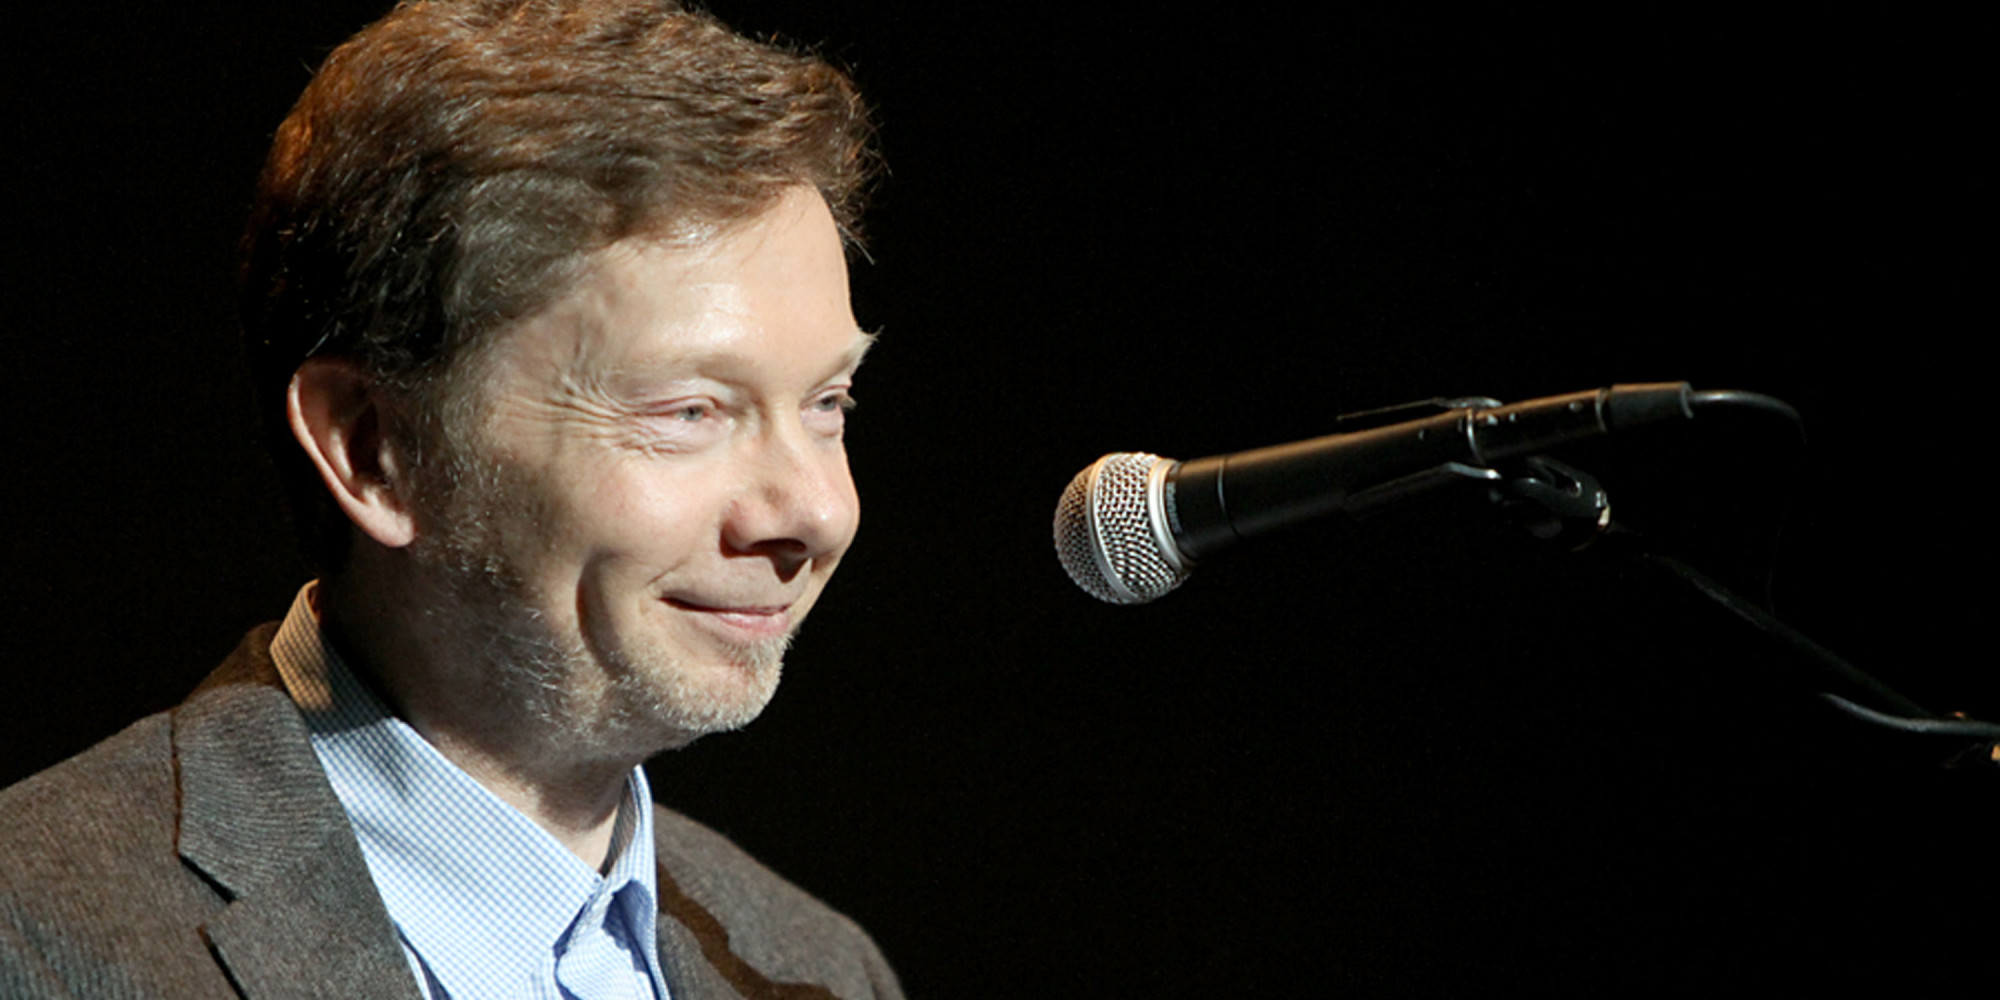 Eckhart Tolle at An Evening with Eckhart Tolle